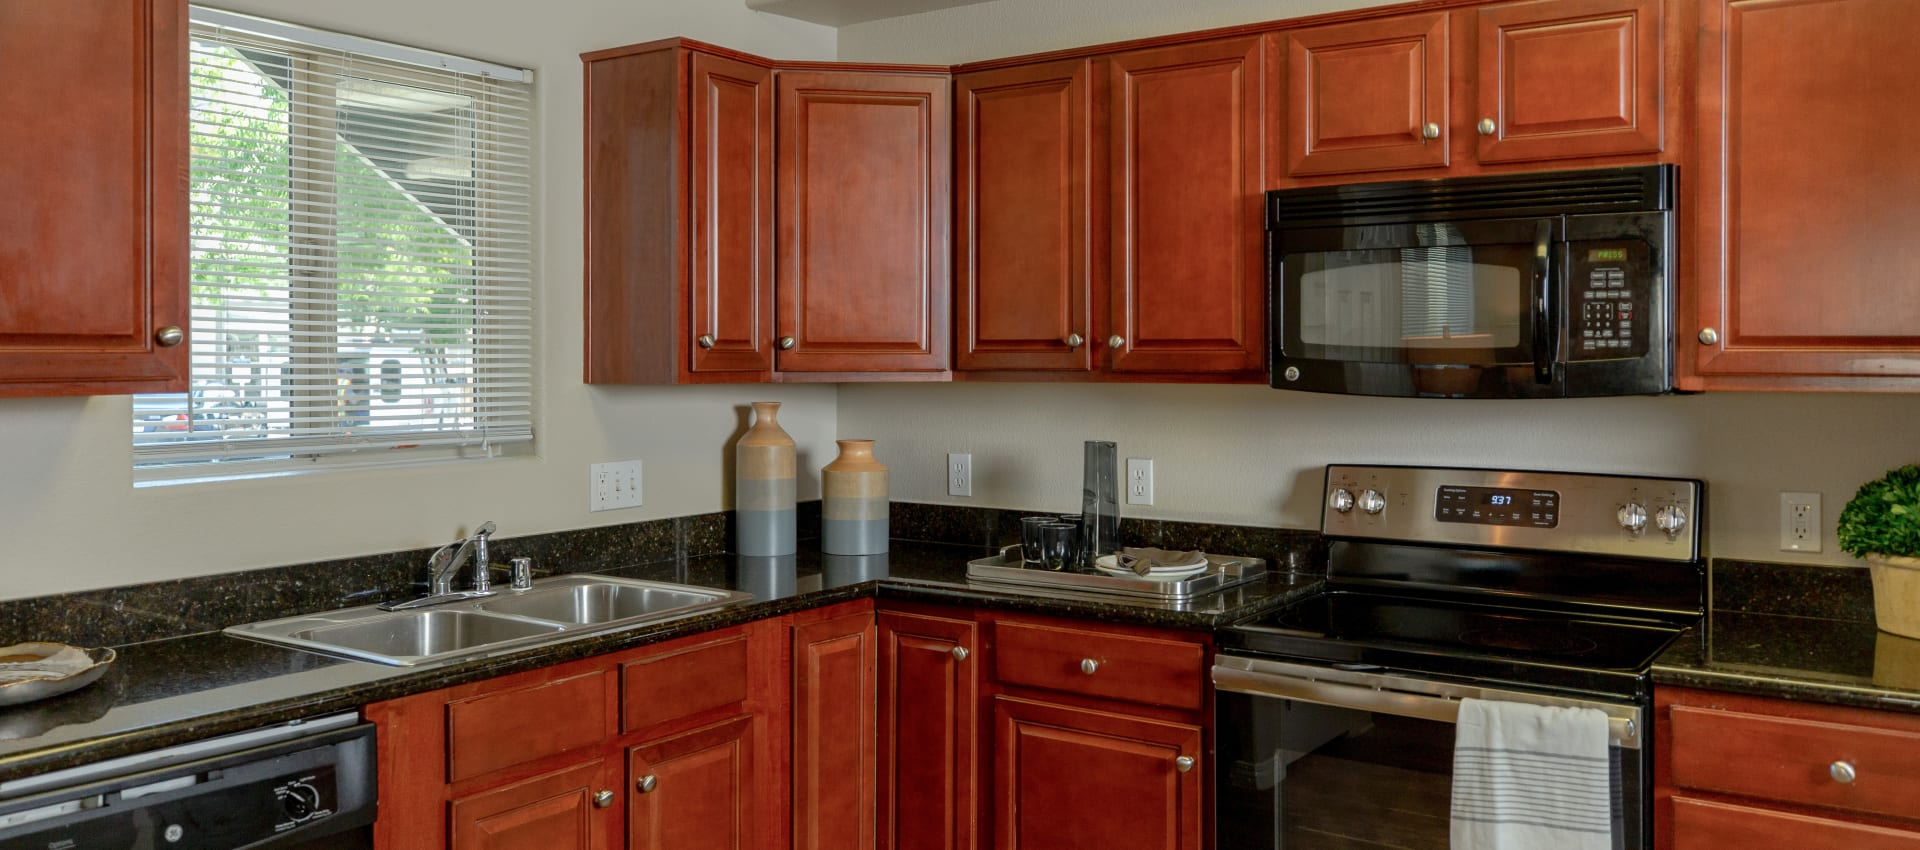 Kitchen at Wolf Ranch Condominium Rentals in Sacramento